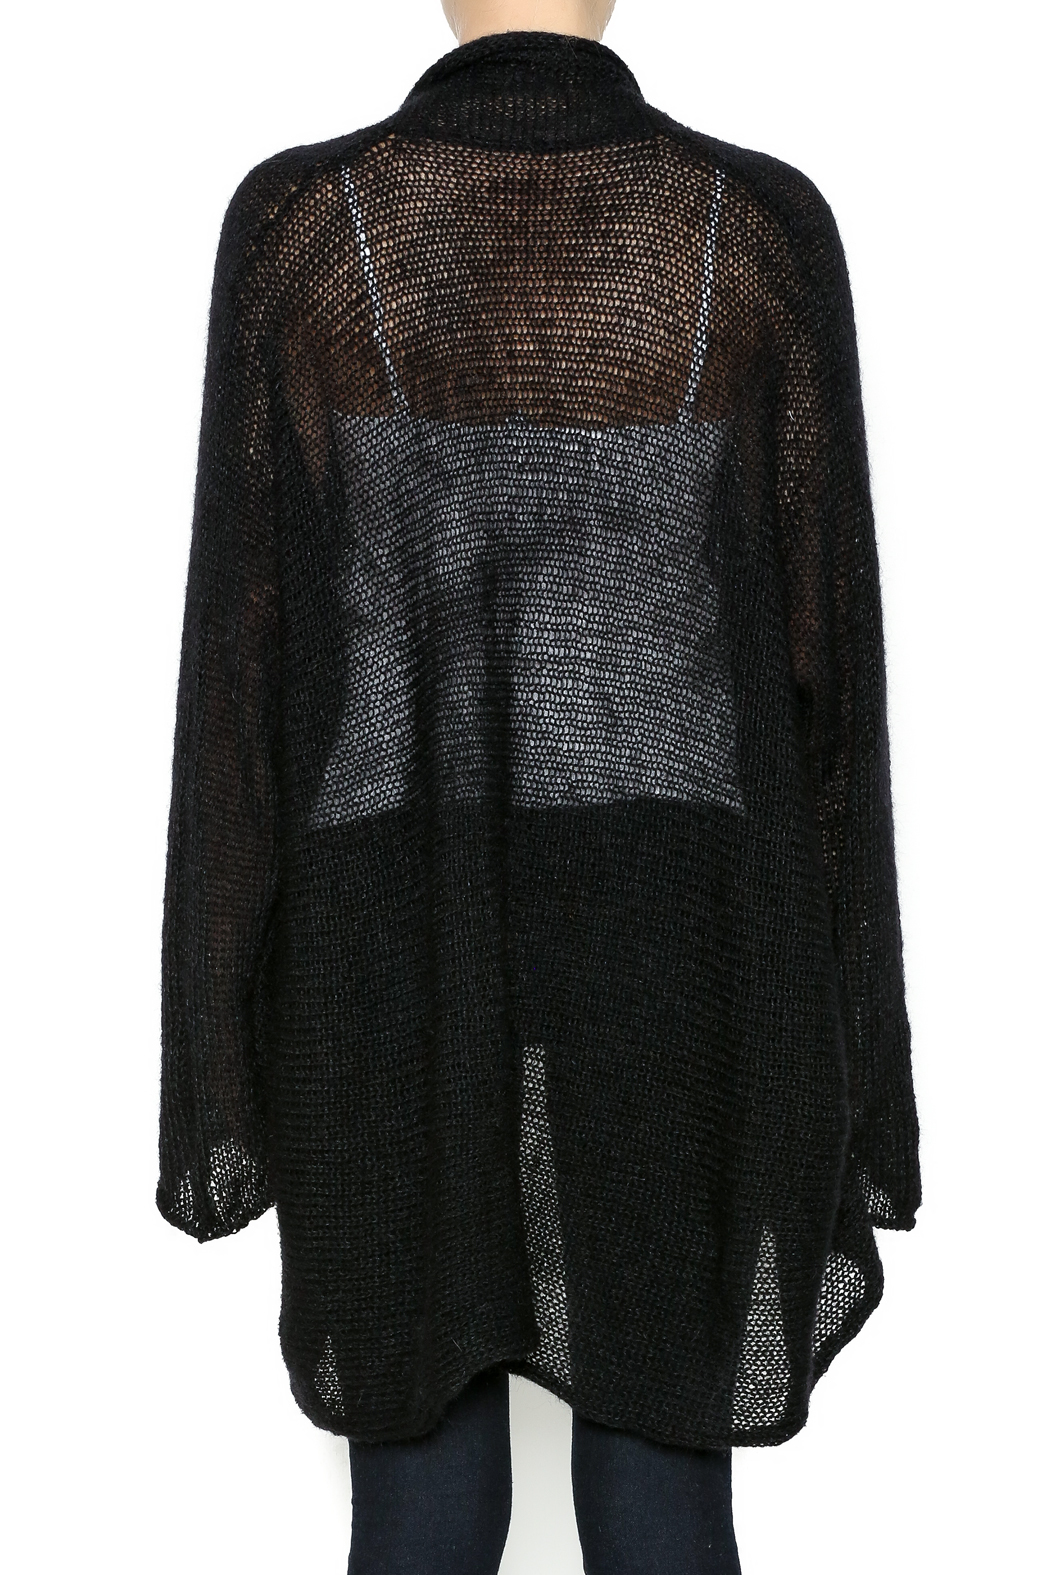 DC KNITS Black Mohair Cardigan - Back Cropped Image